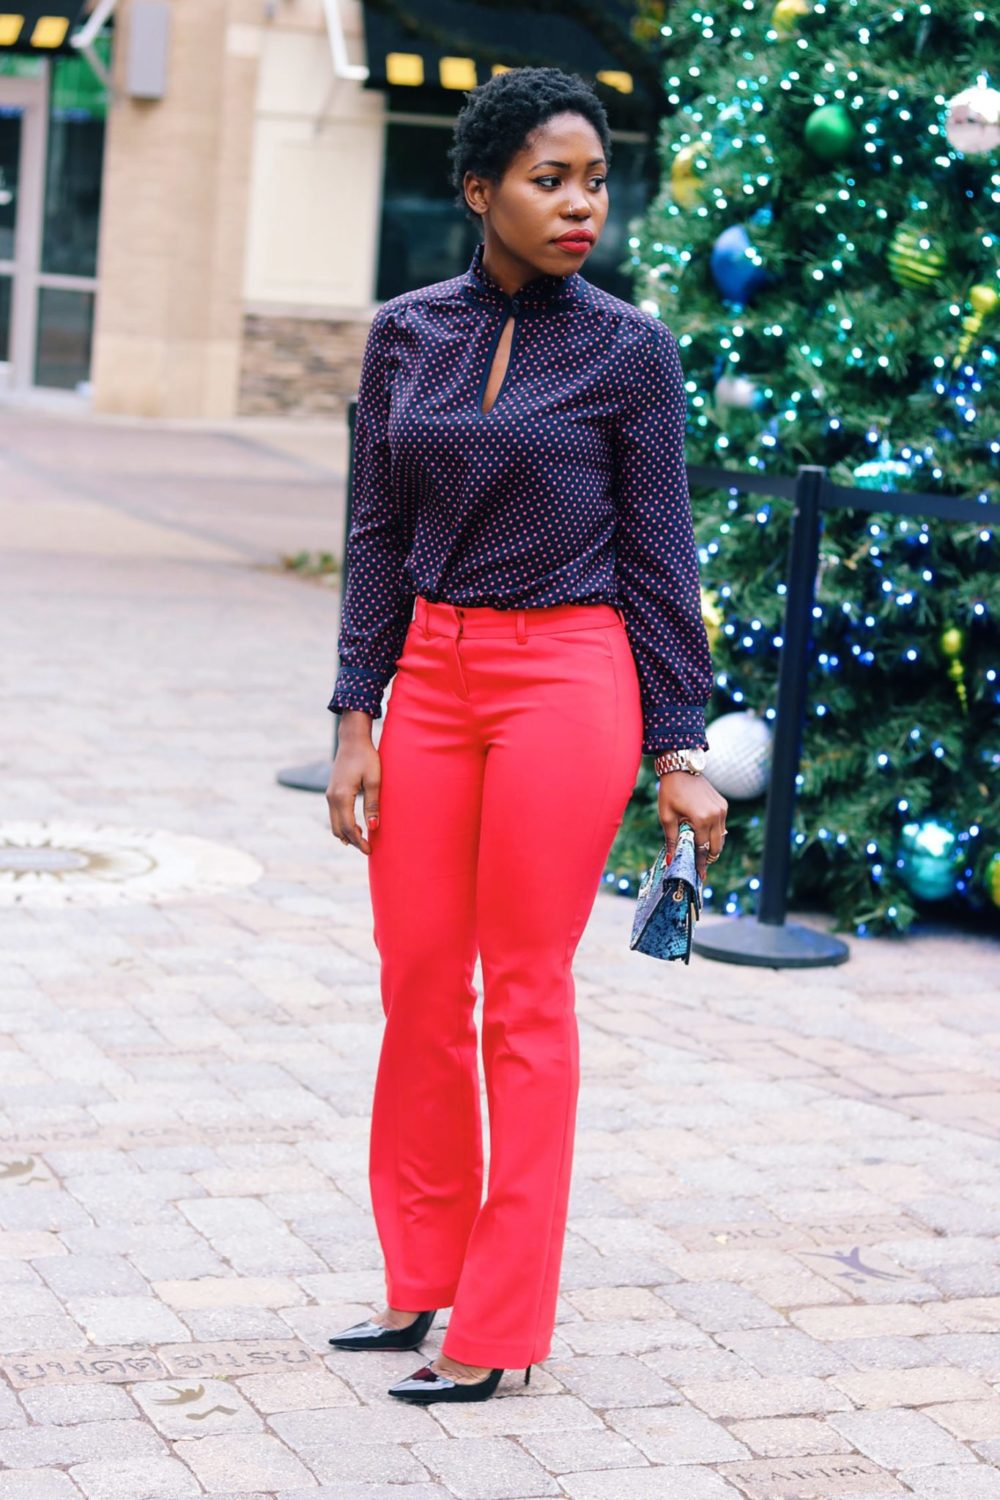 style-synopsis-polka-dot-top-flare-pants